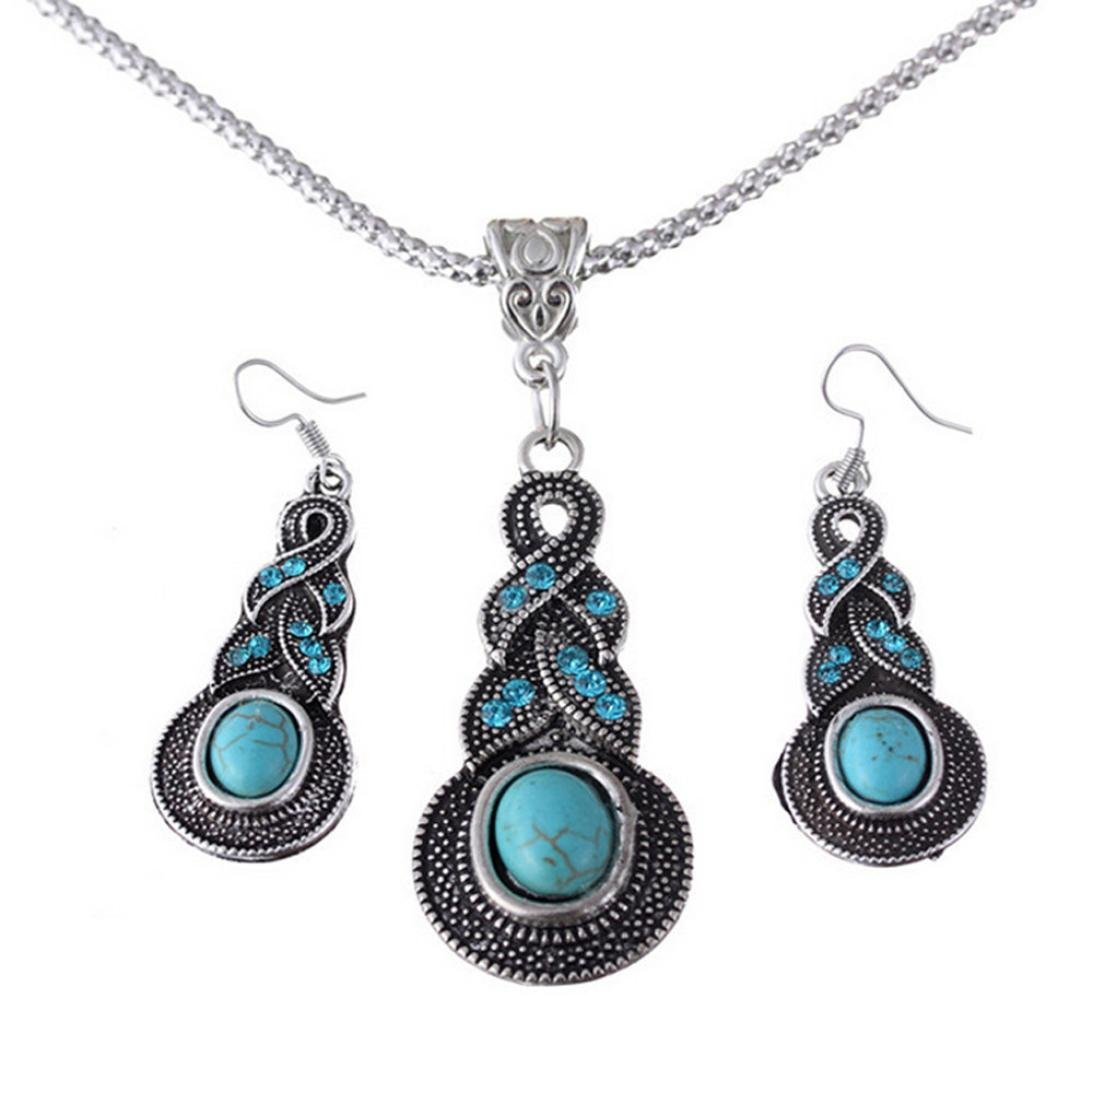 Water Drops Green Turquoise Chunky Pendant Jewelry NEARTIME Necklace Earrings Set